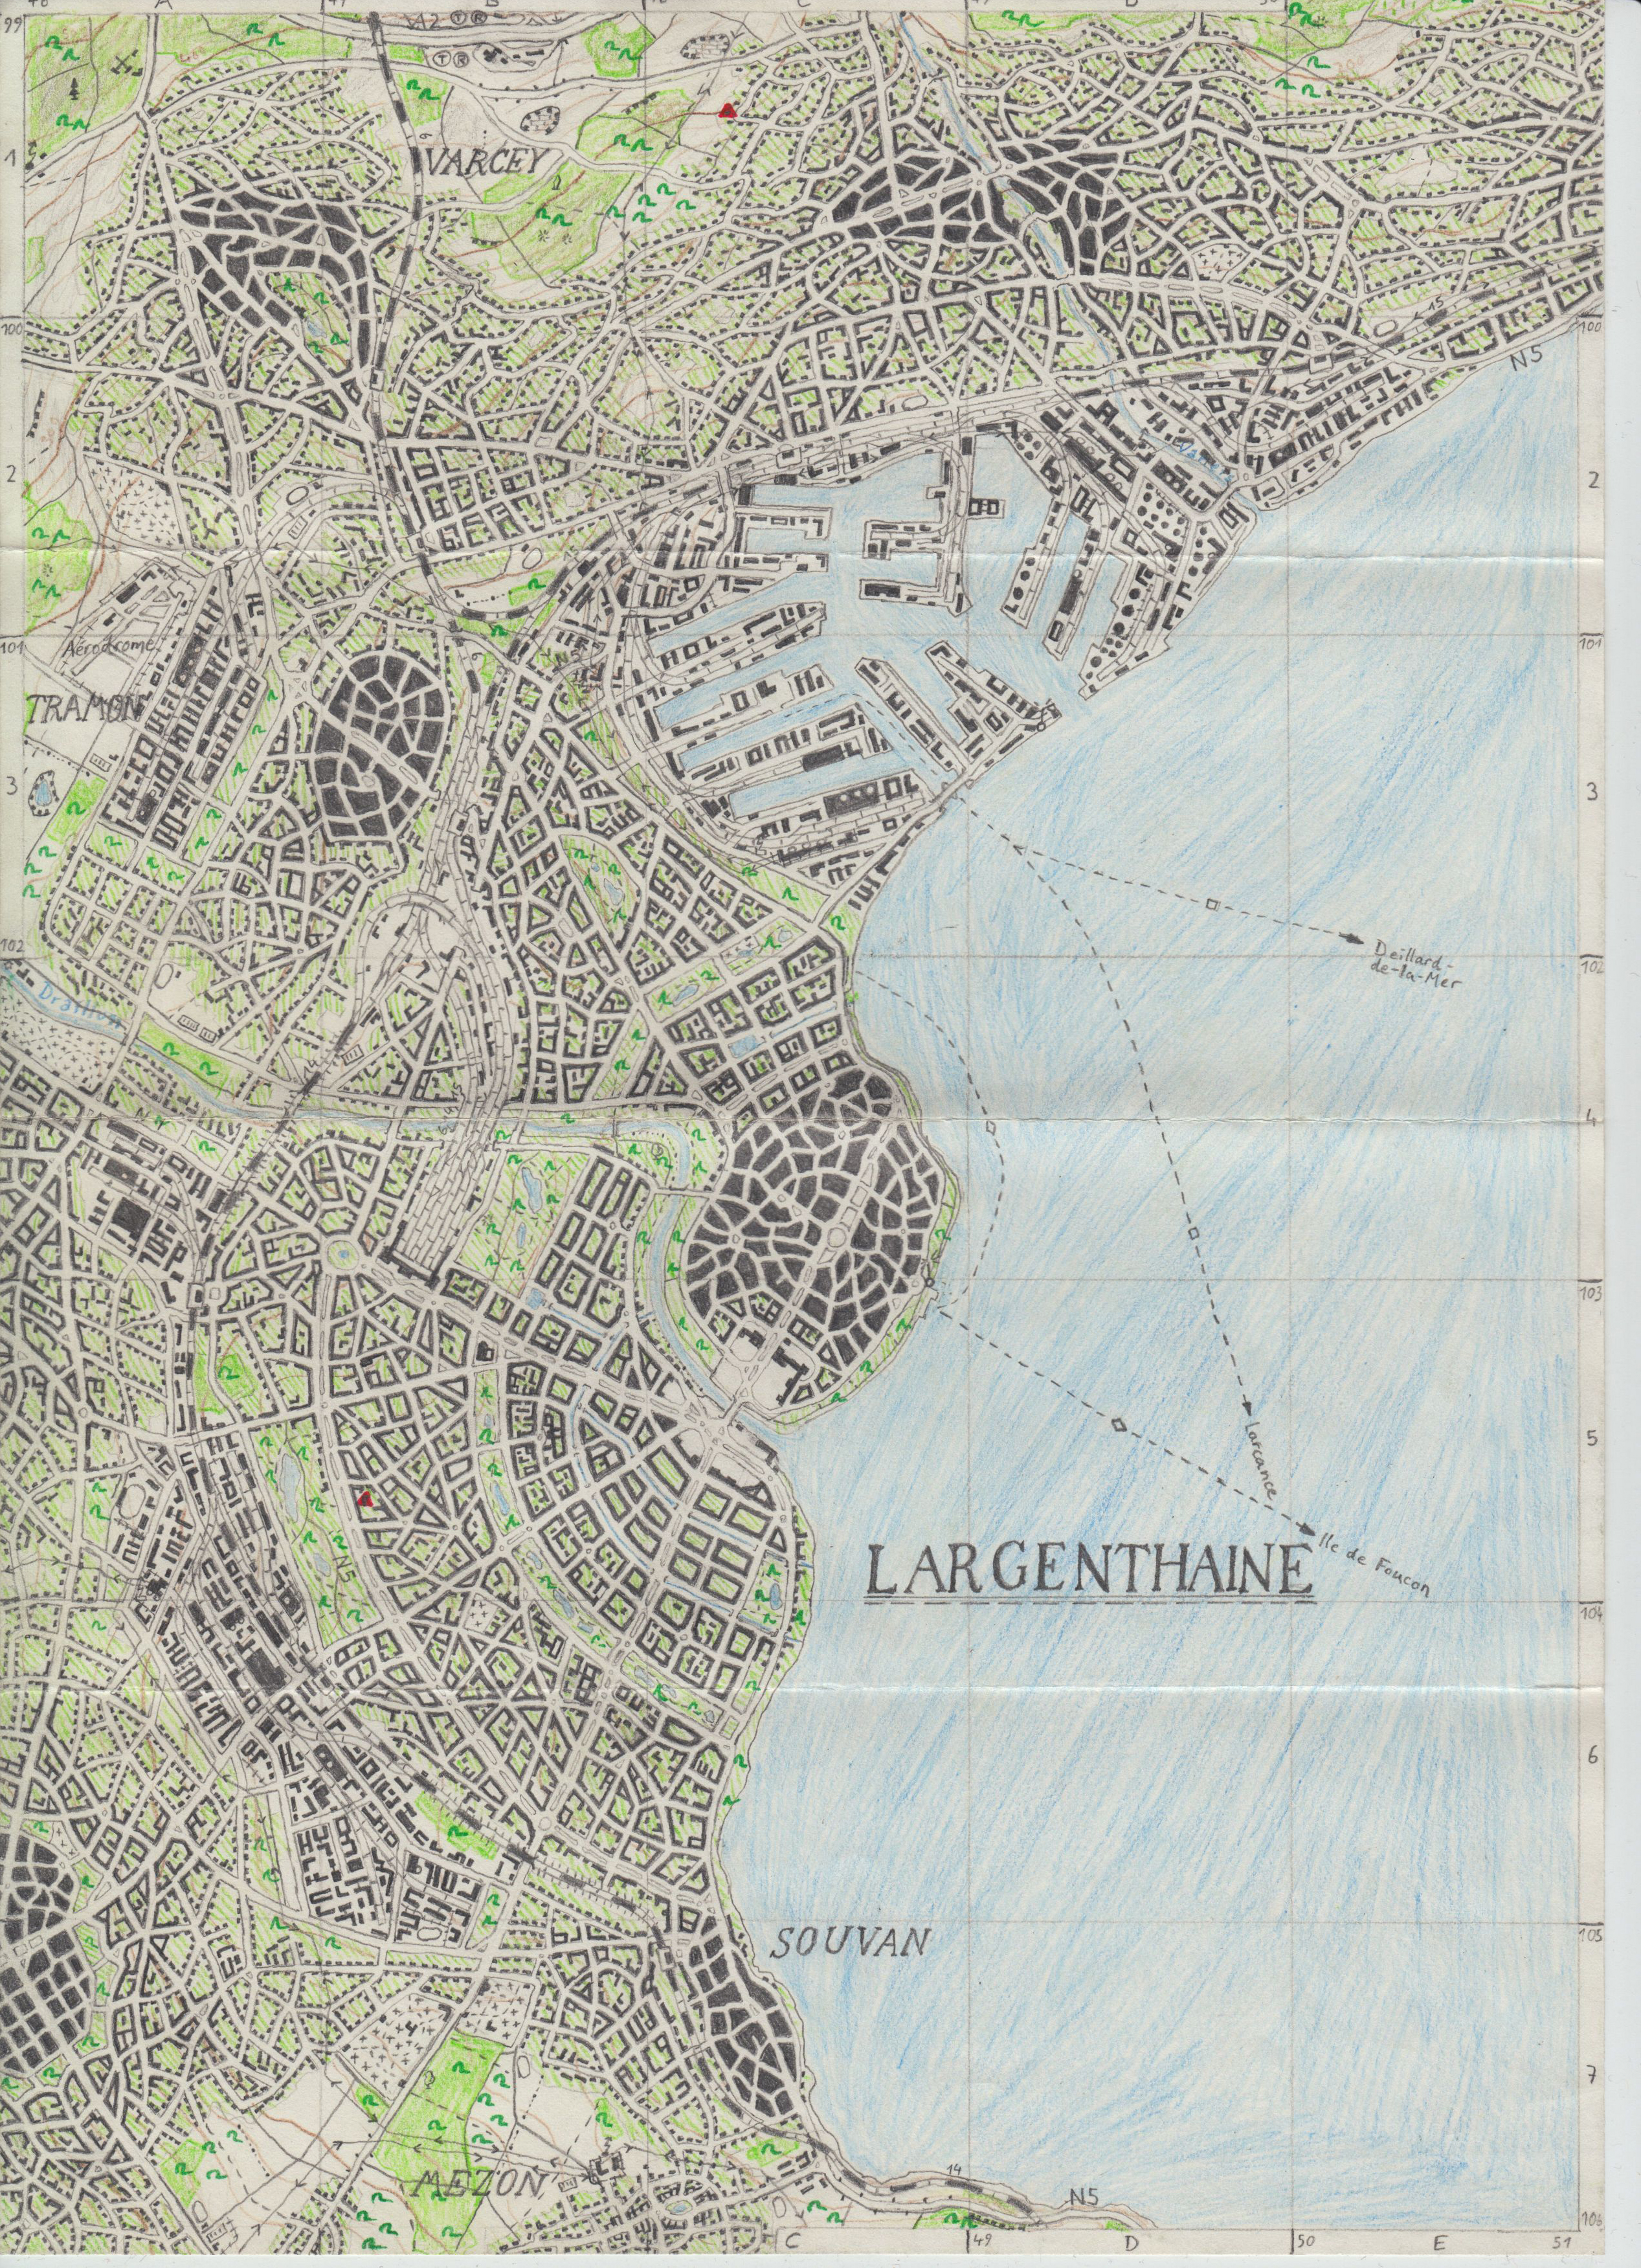 Topographical map of Largenthaine